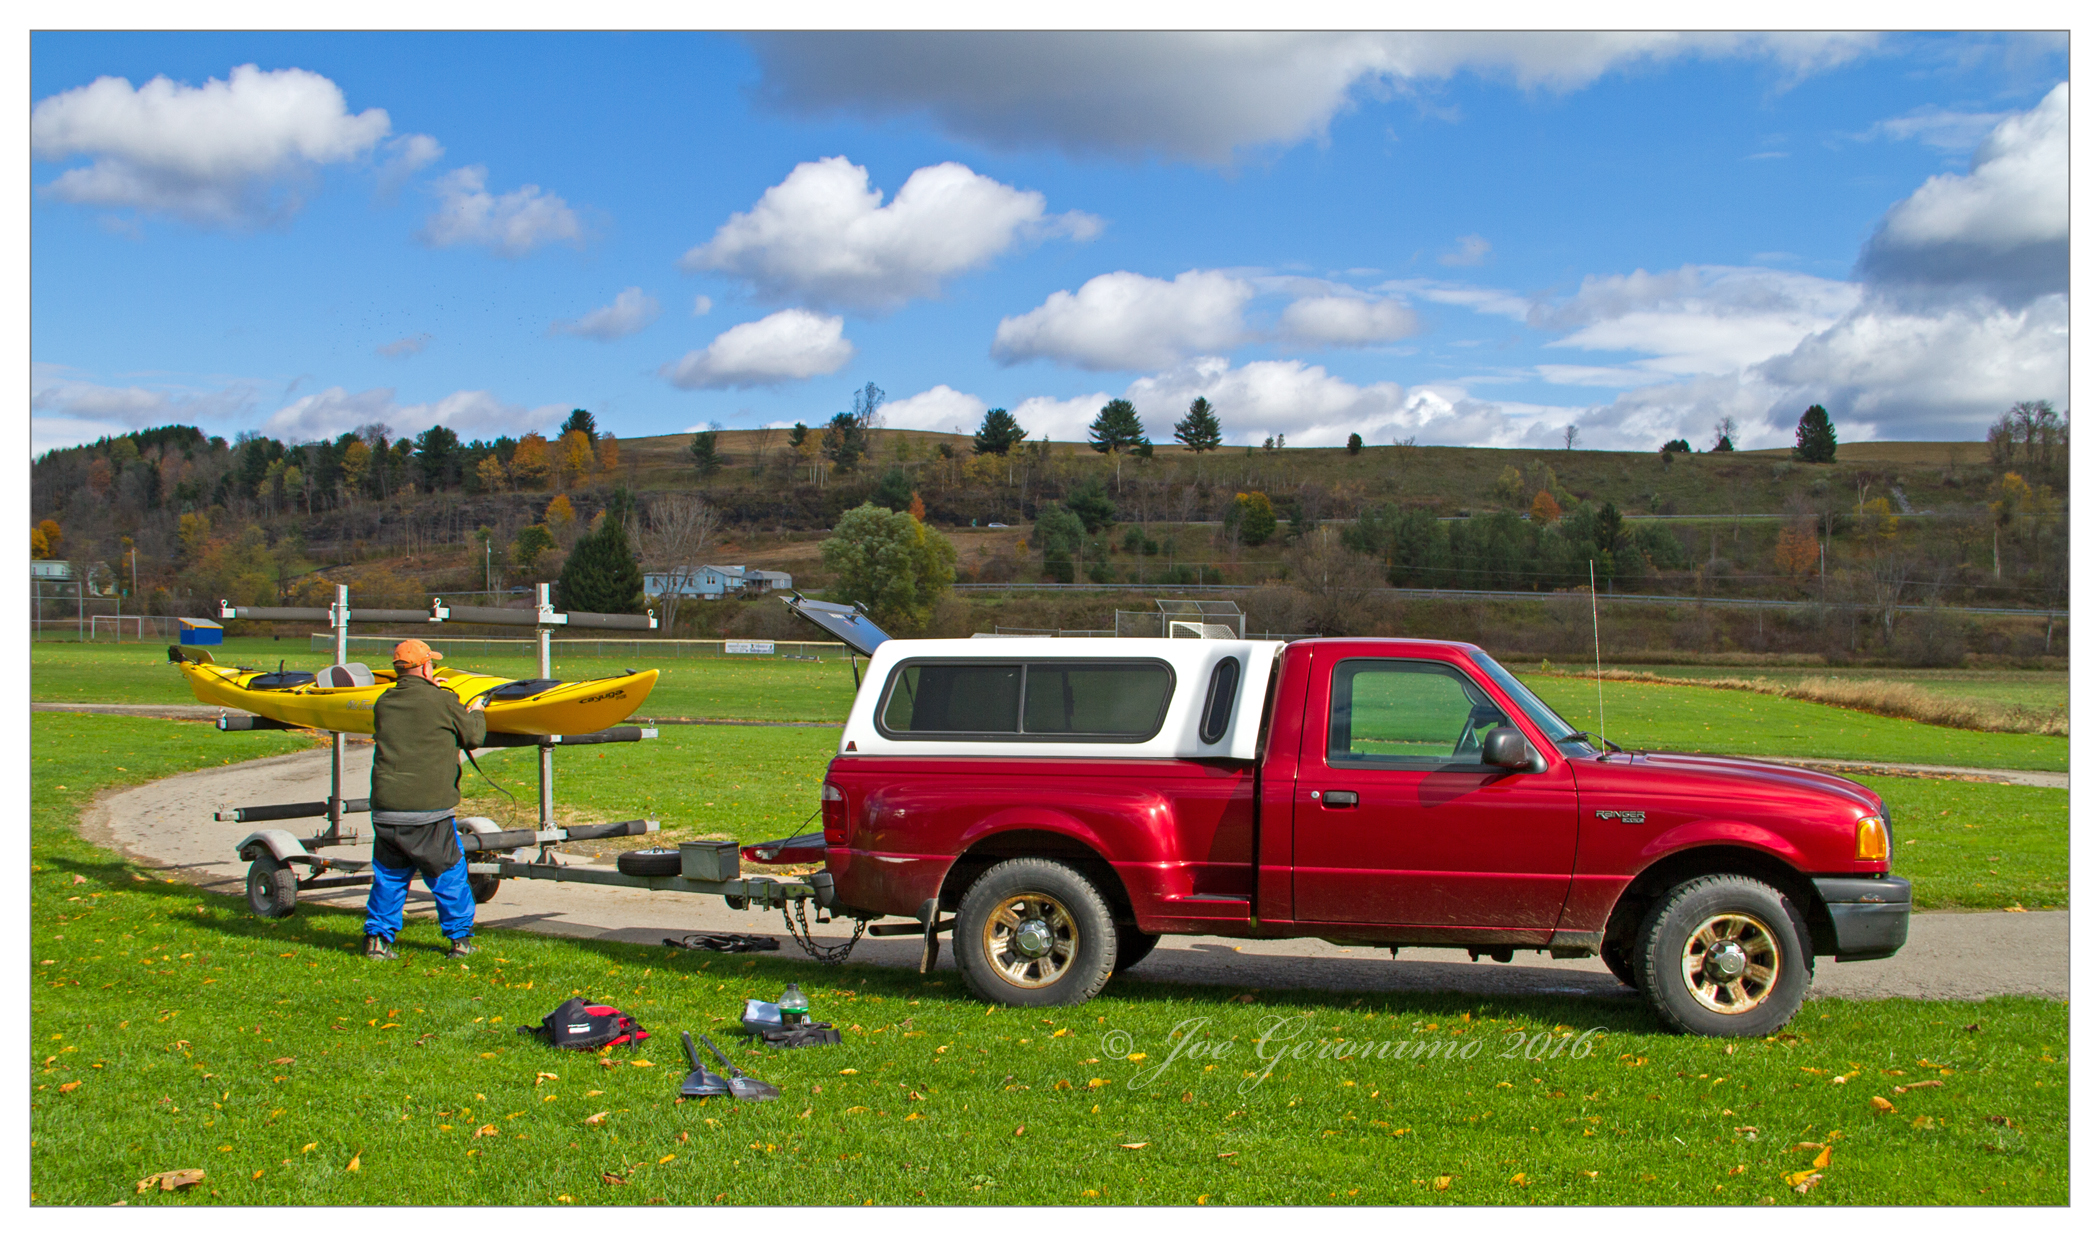 Warren loading our boats for the trip back to my car, October 23rd 2016 Marathon, NY. Image © Joe Geronimo